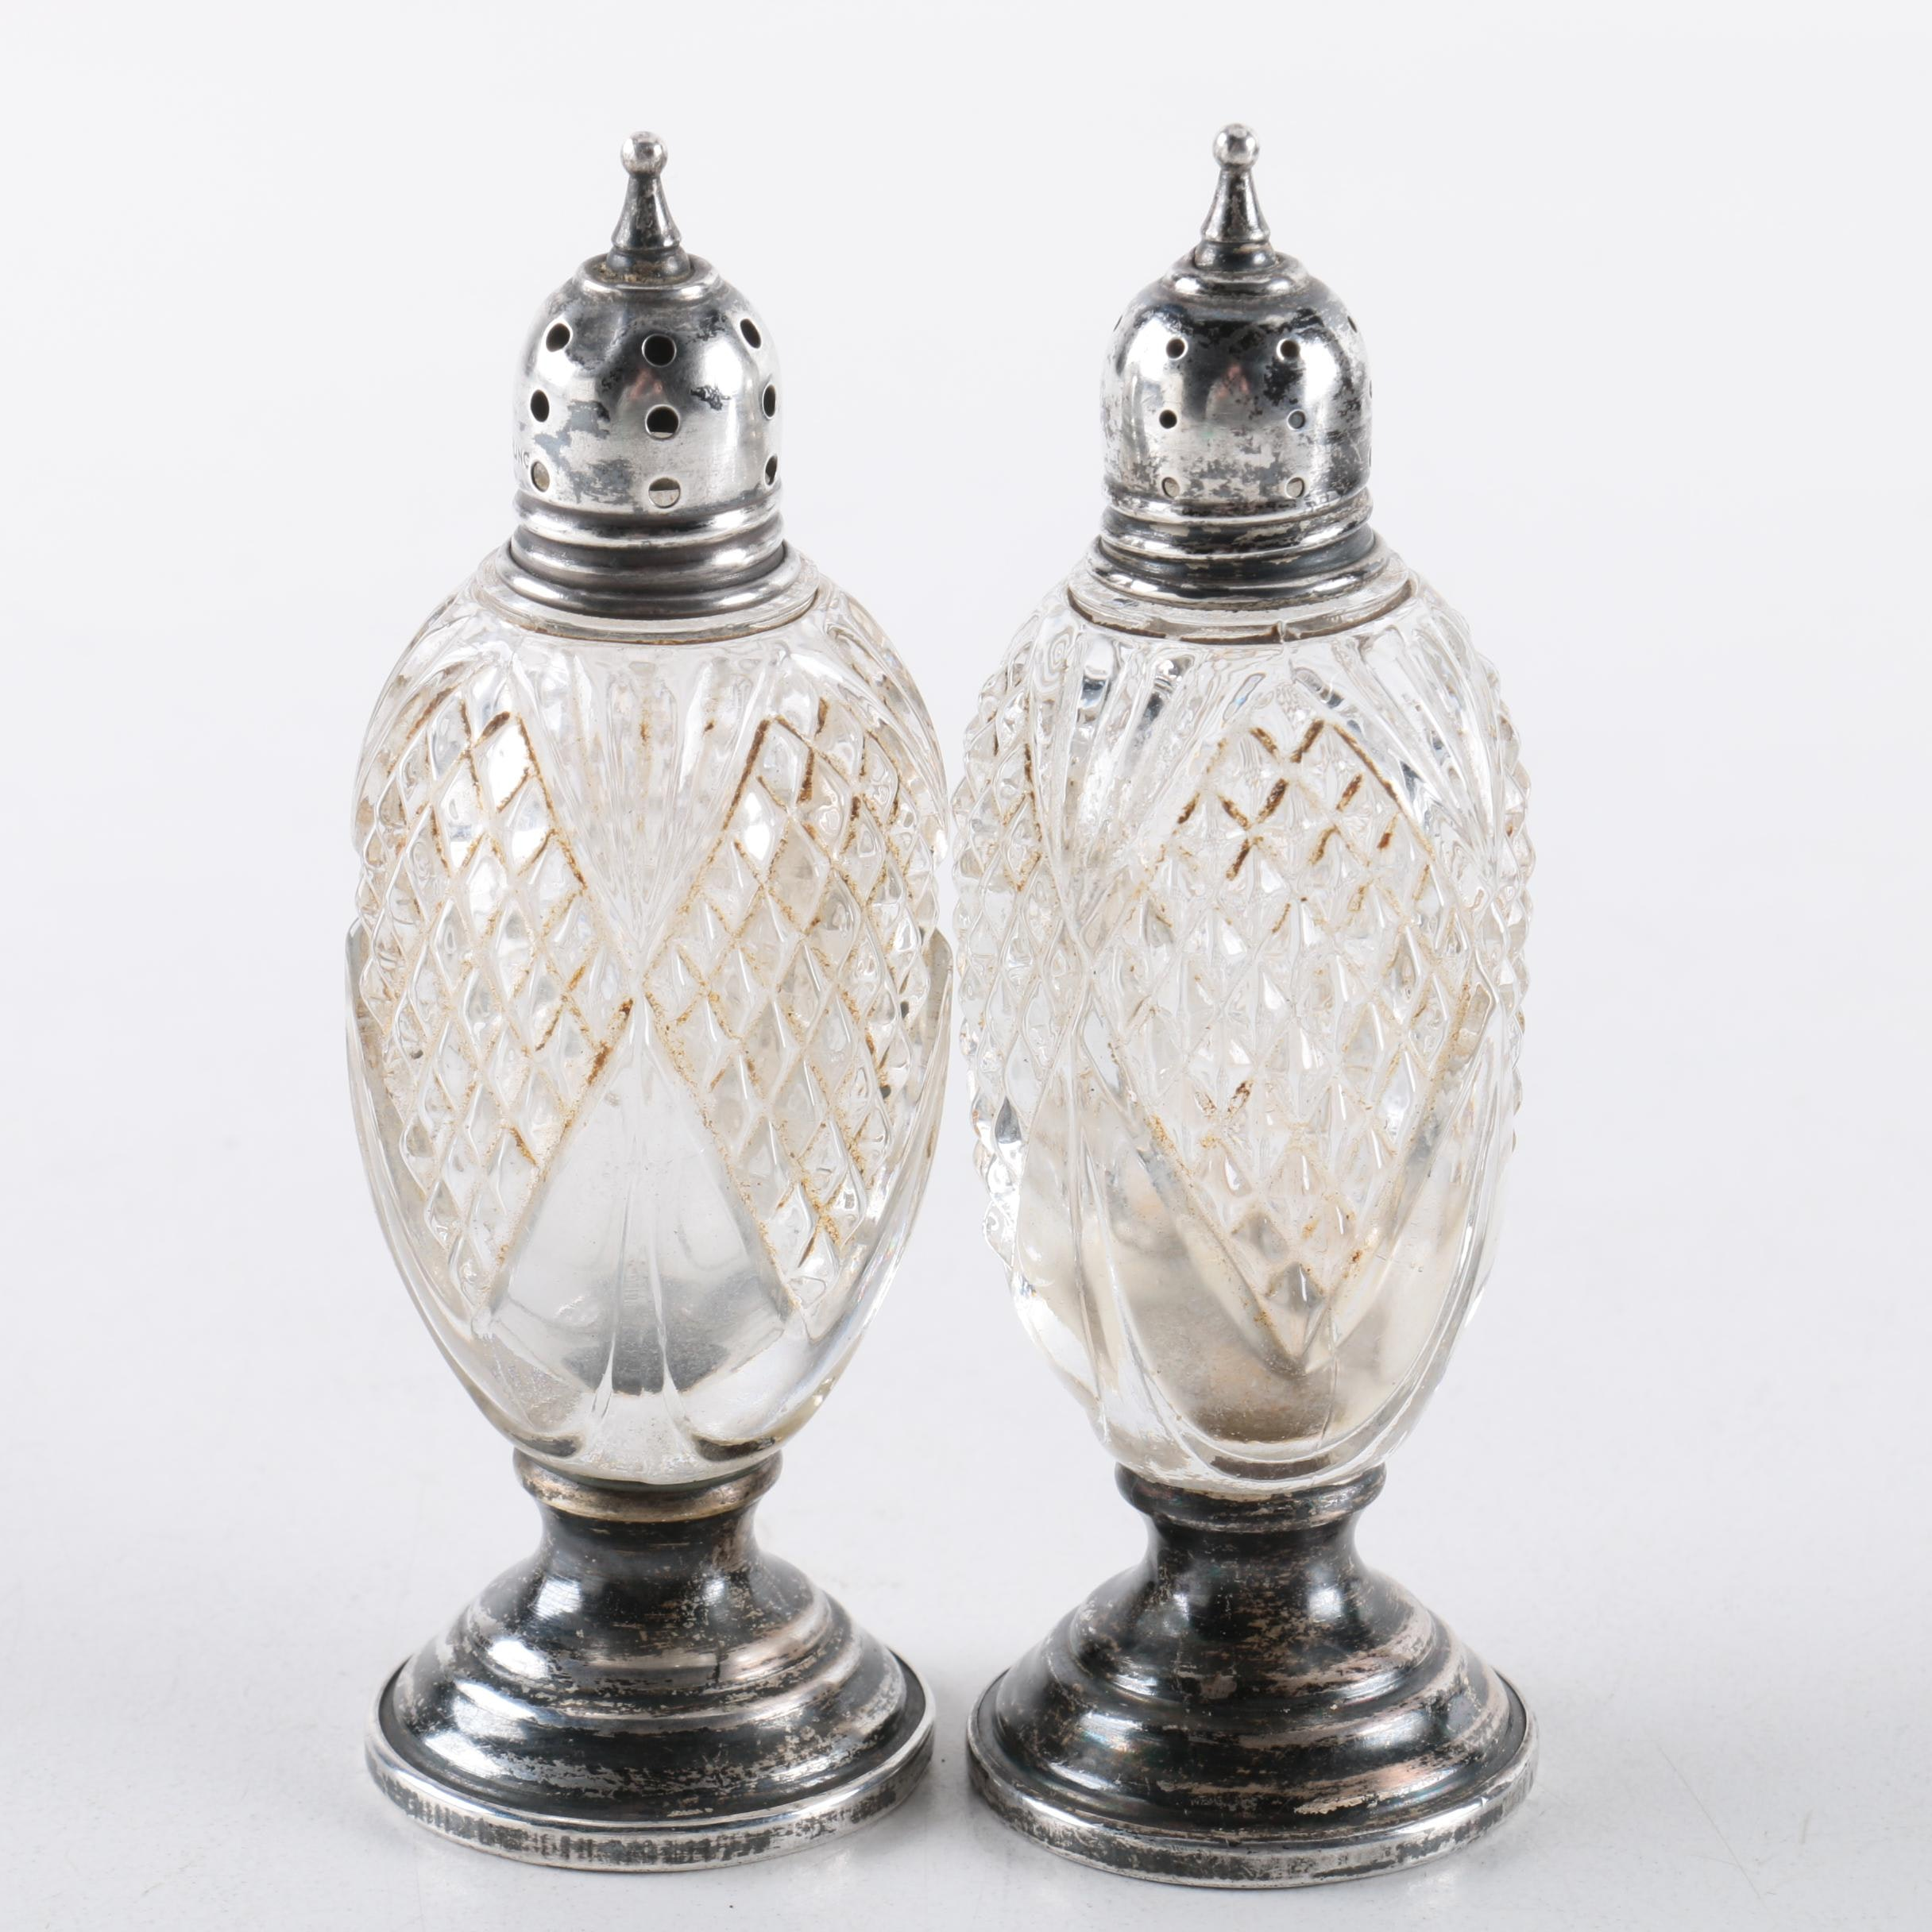 Vintage Sheffield Silver Co. Sterling and Crystal Salt and Pepper Shakers